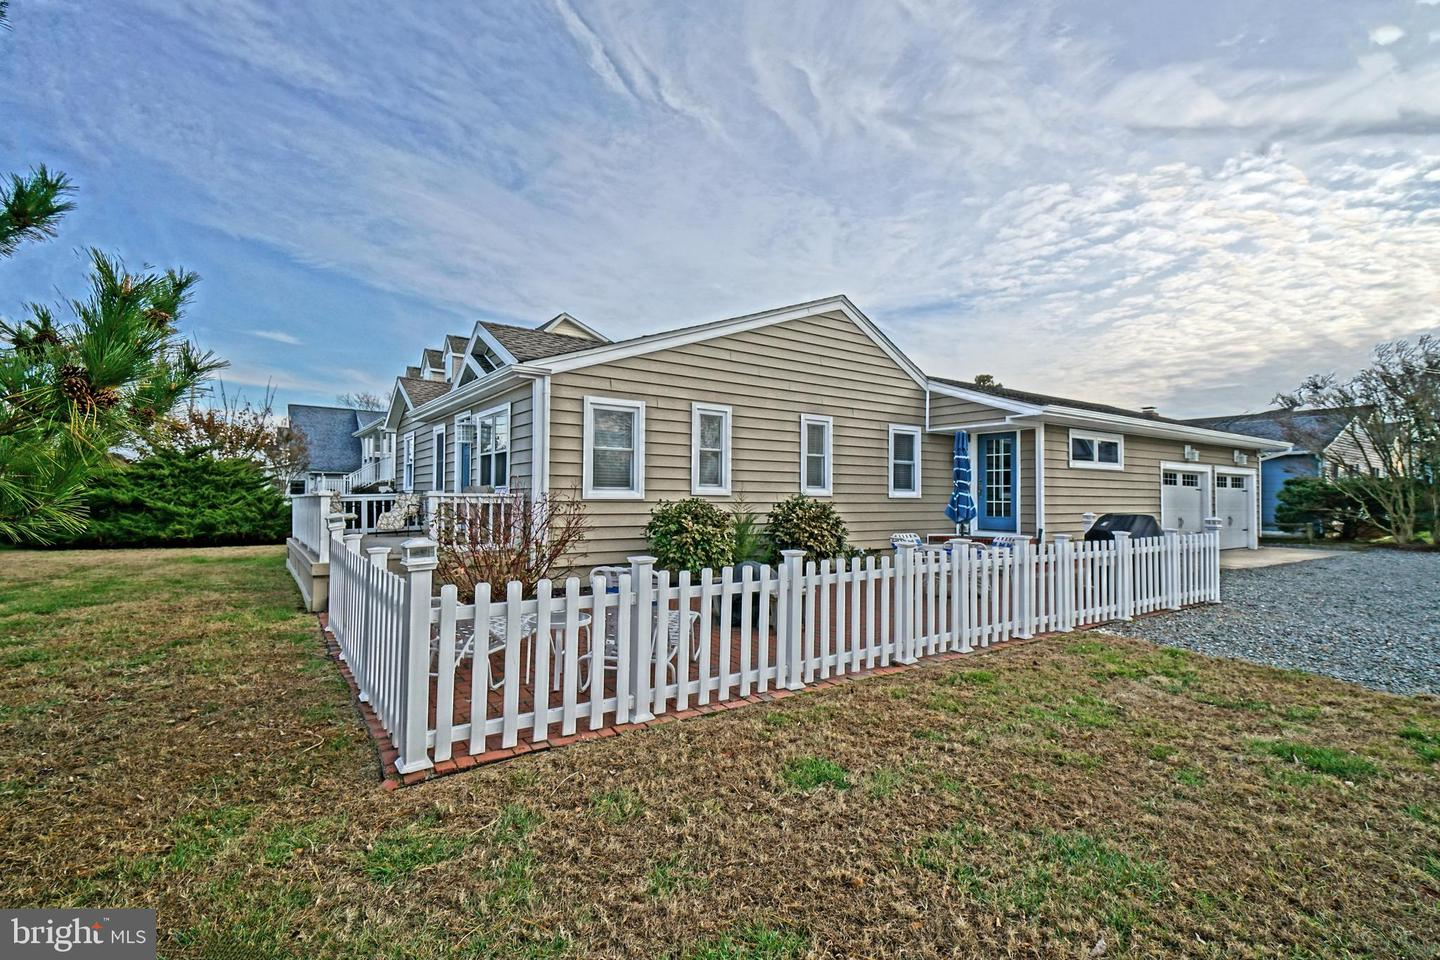 DESU150754-302164450449-2020-03-09-15-33-50 1701 Cedar St | Lewes, DE Real Estate For Sale | MLS# Desu150754  - Lee Ann Group